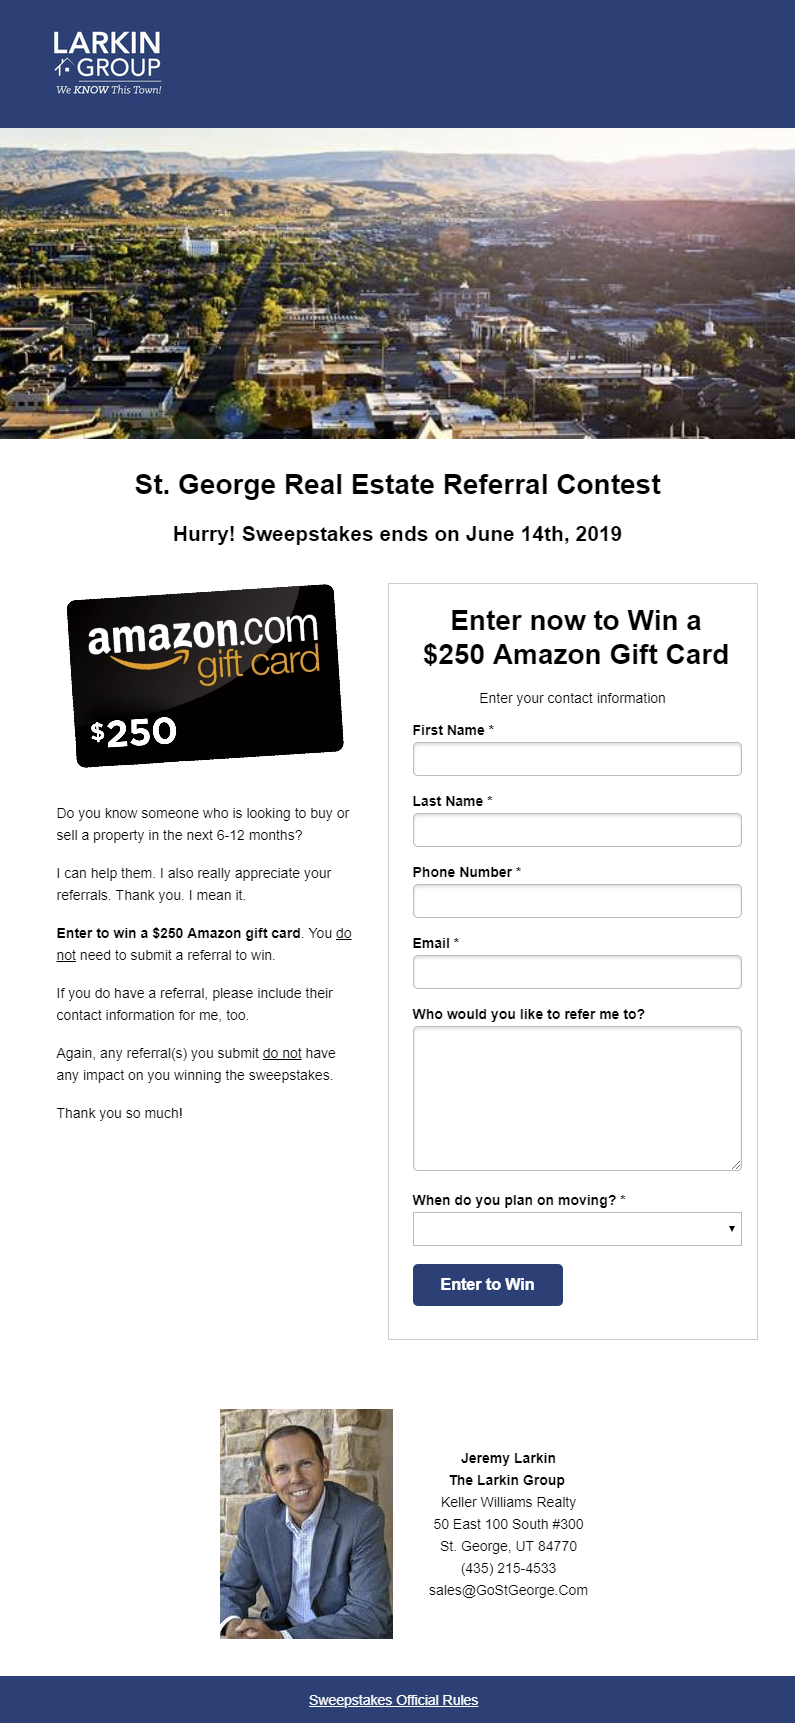 Referral Content Landing Page